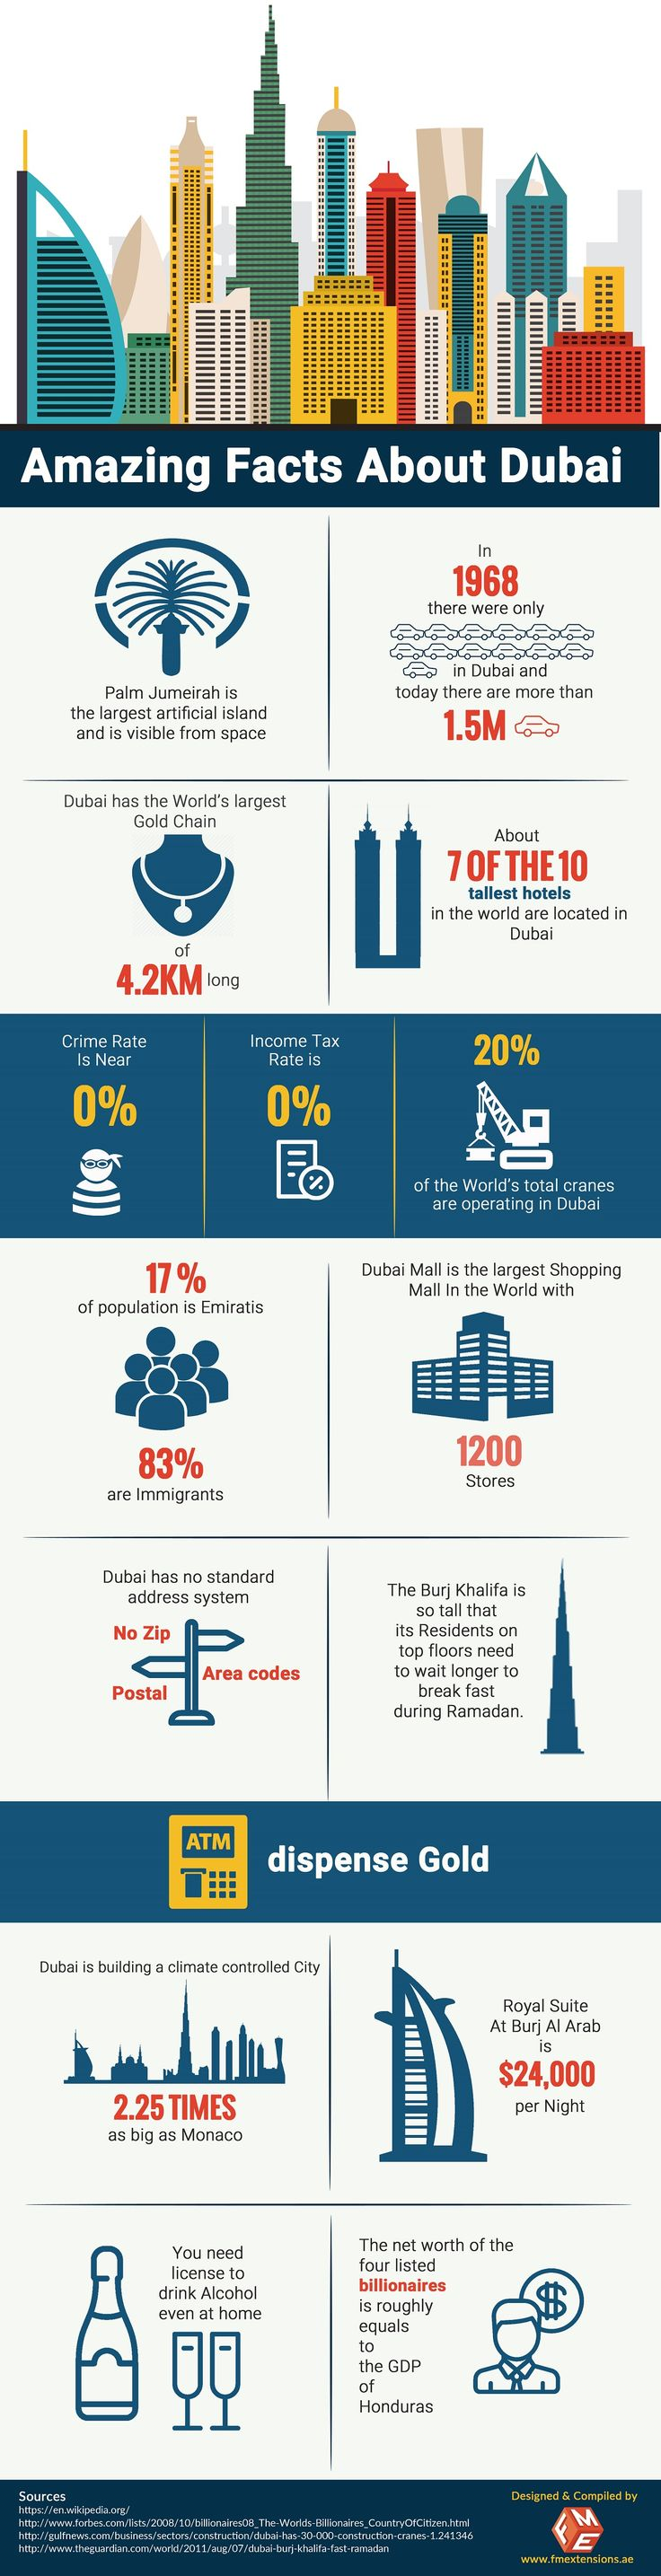 16 Amazing Facts About Dubai #Infographic #Dubai #Facts